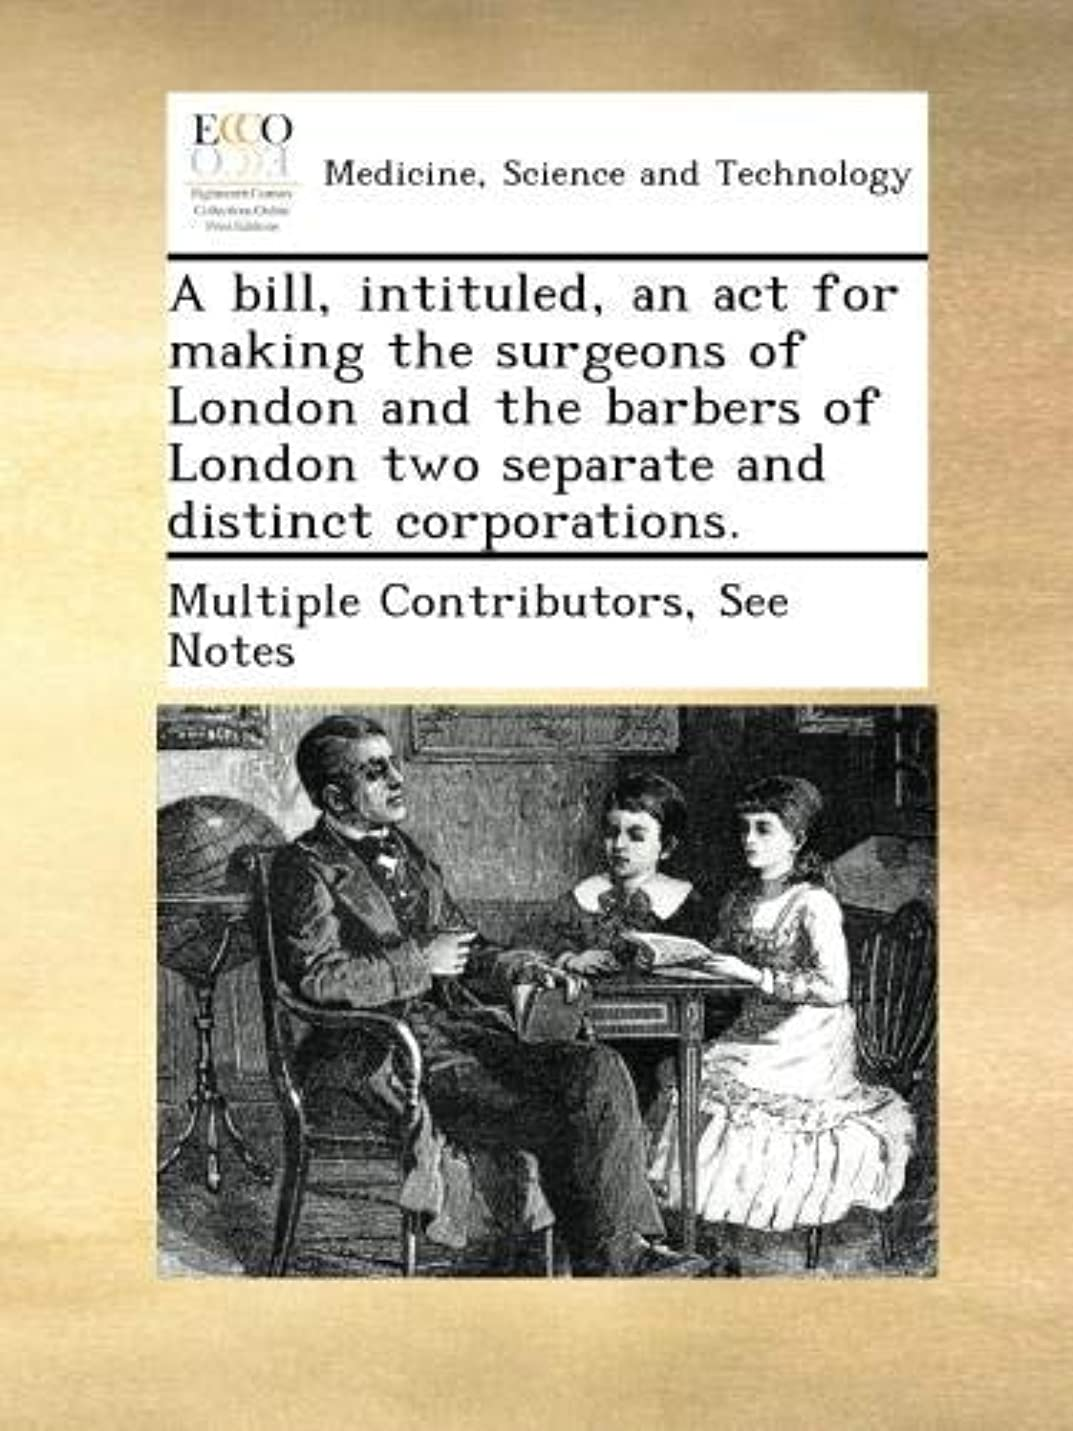 ポーン支配的忘れっぽいA bill, intituled, an act for making the surgeons of London and the barbers of London two separate and distinct corporations.